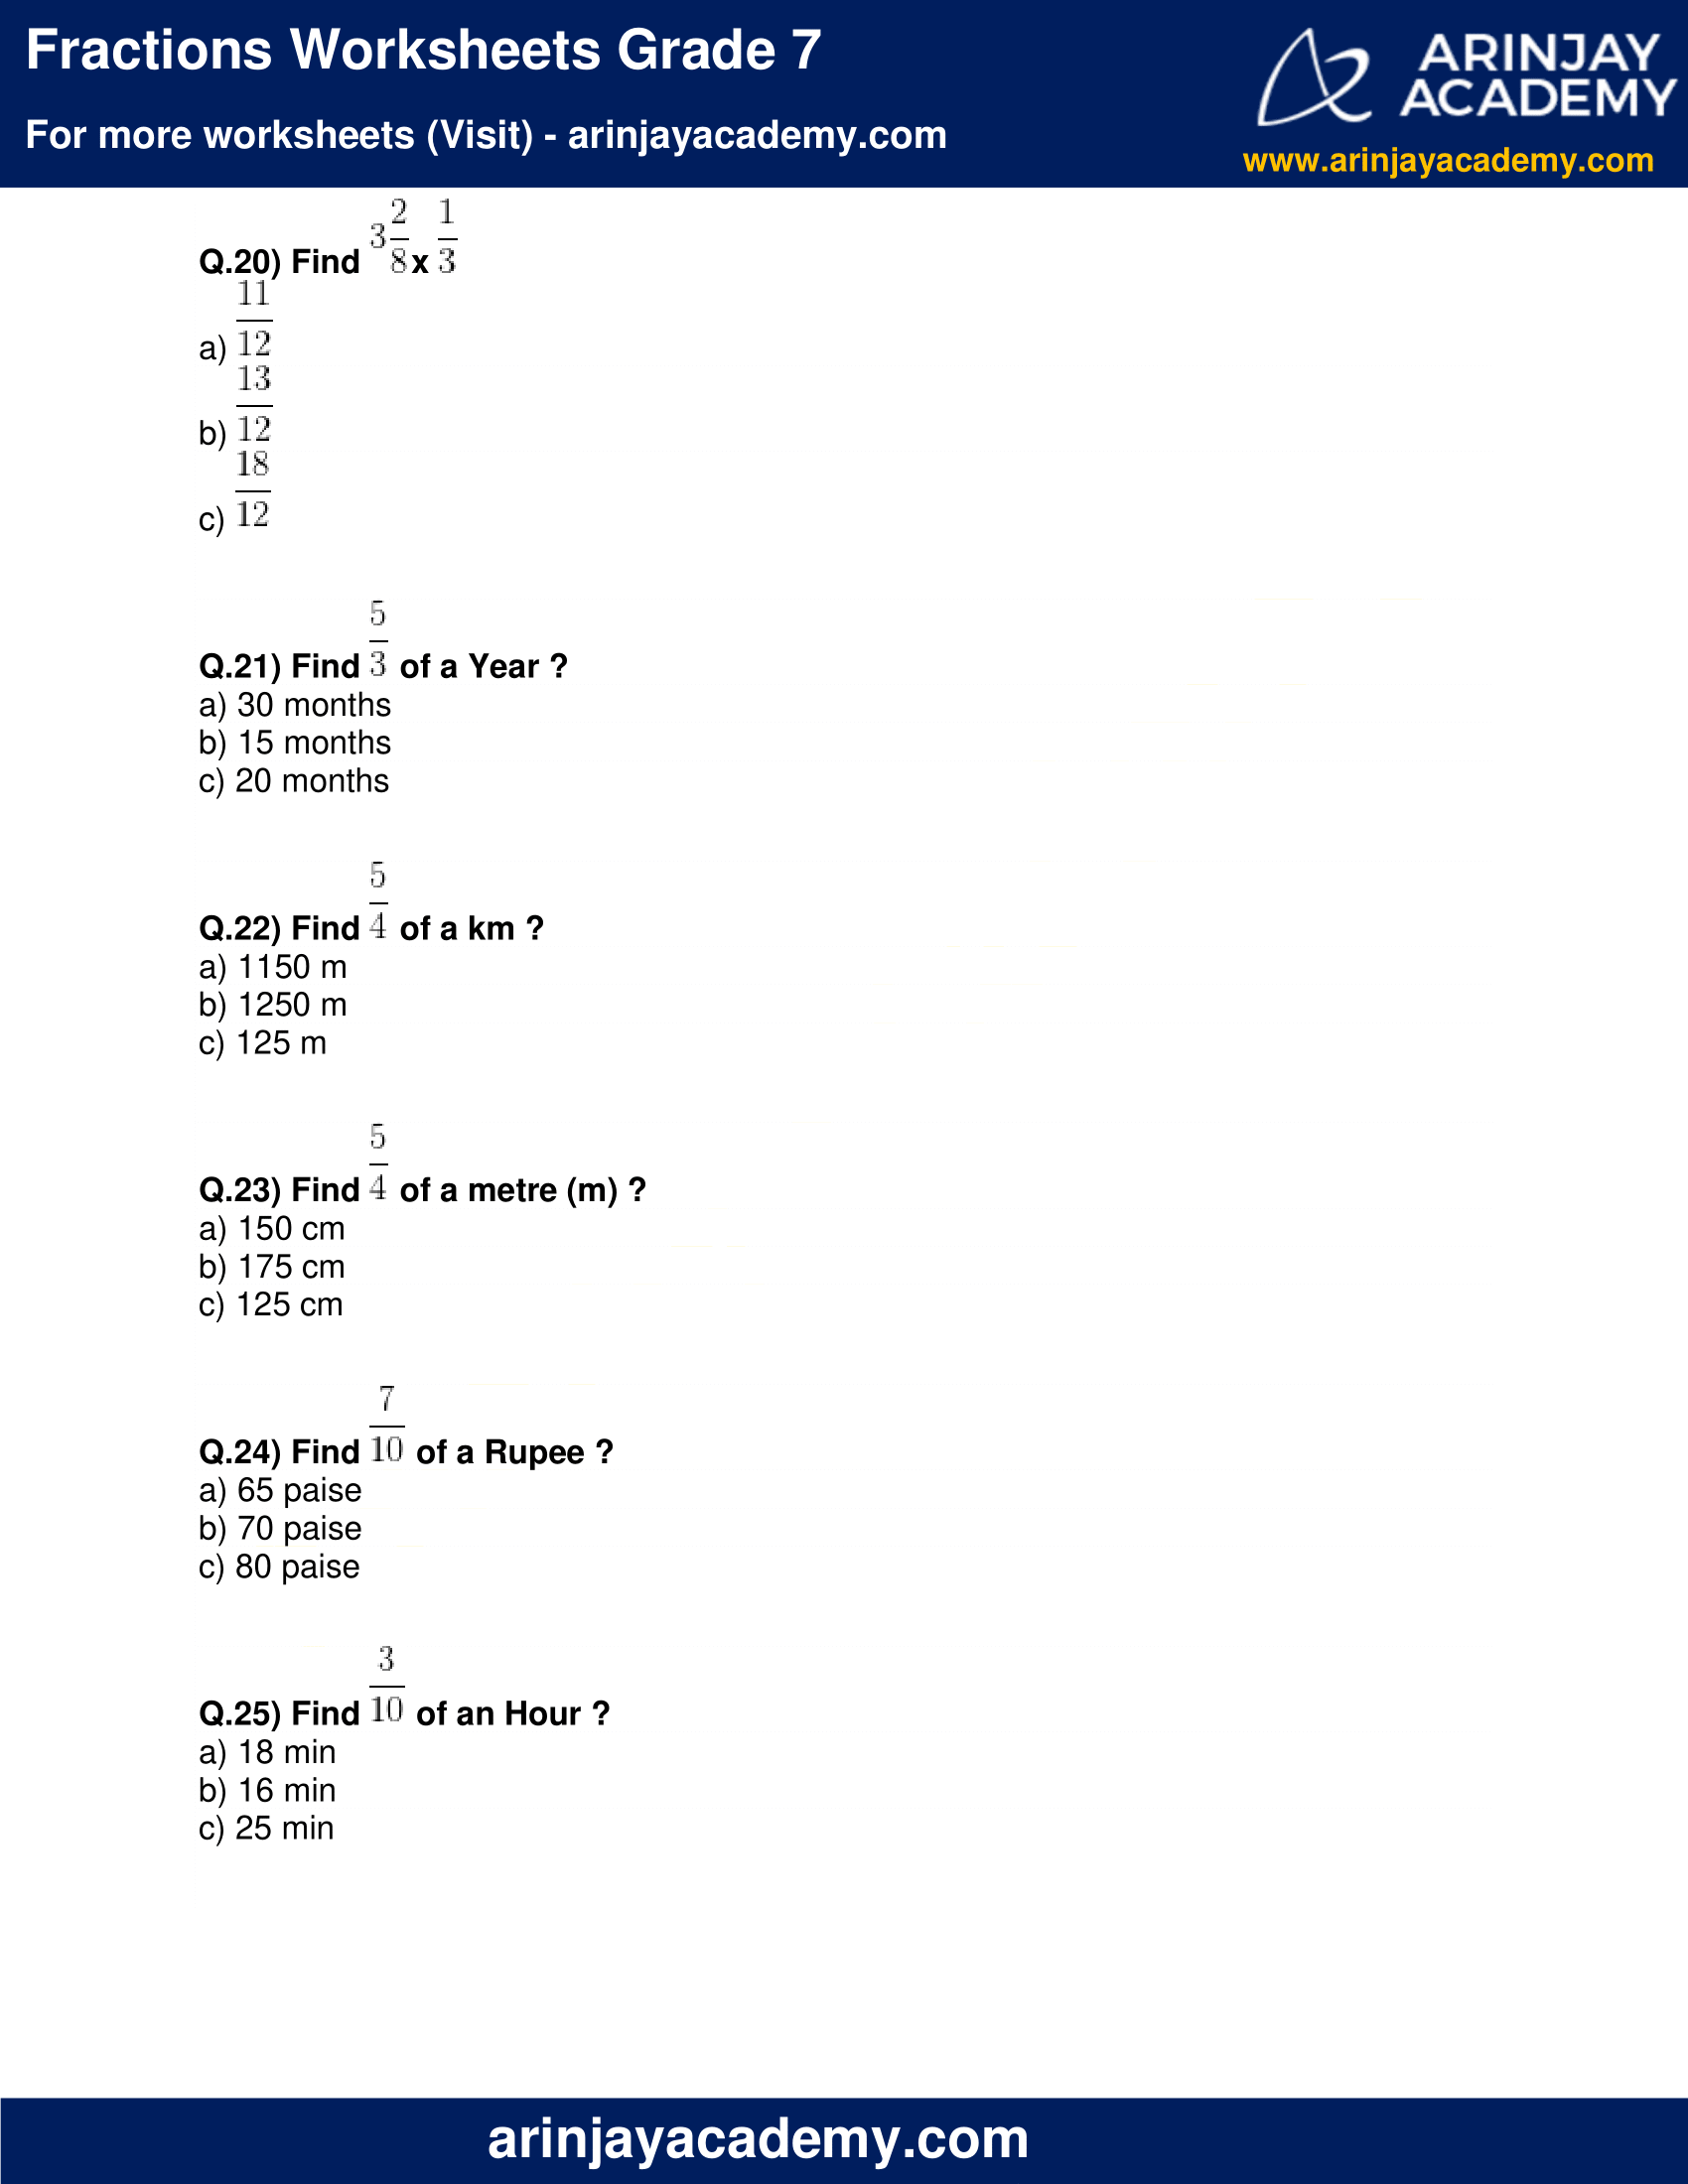 Fractions Worksheets Grade 7 image 5